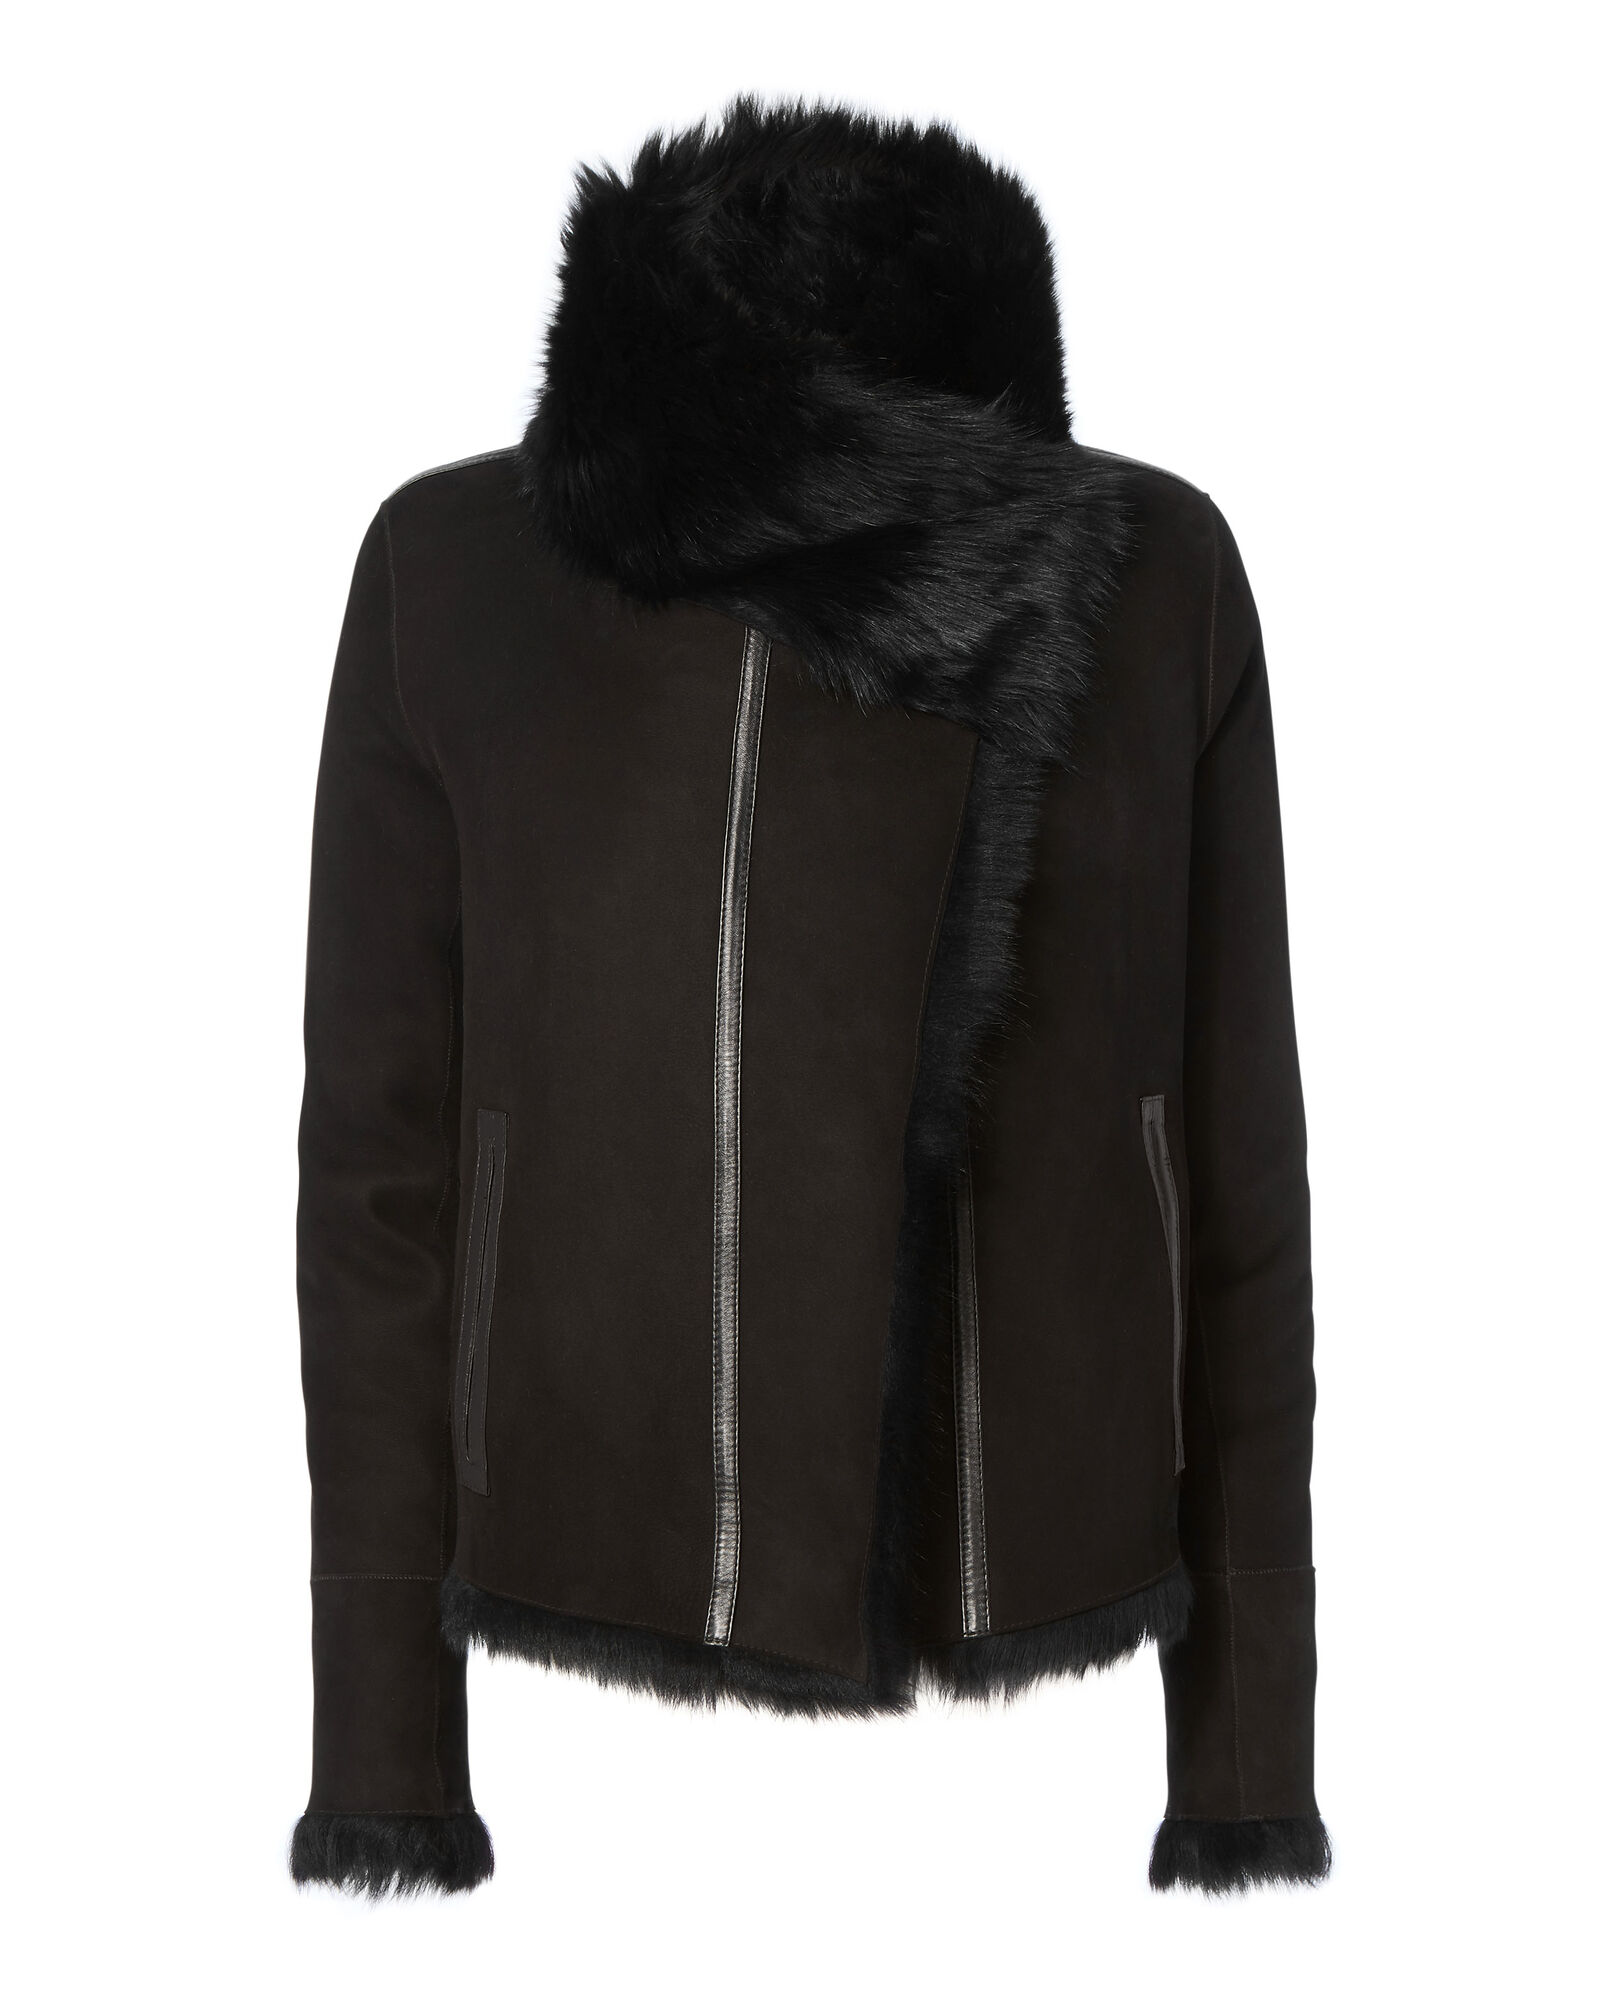 Reversible Shearling Moto Jacket, BLACK, hi-res